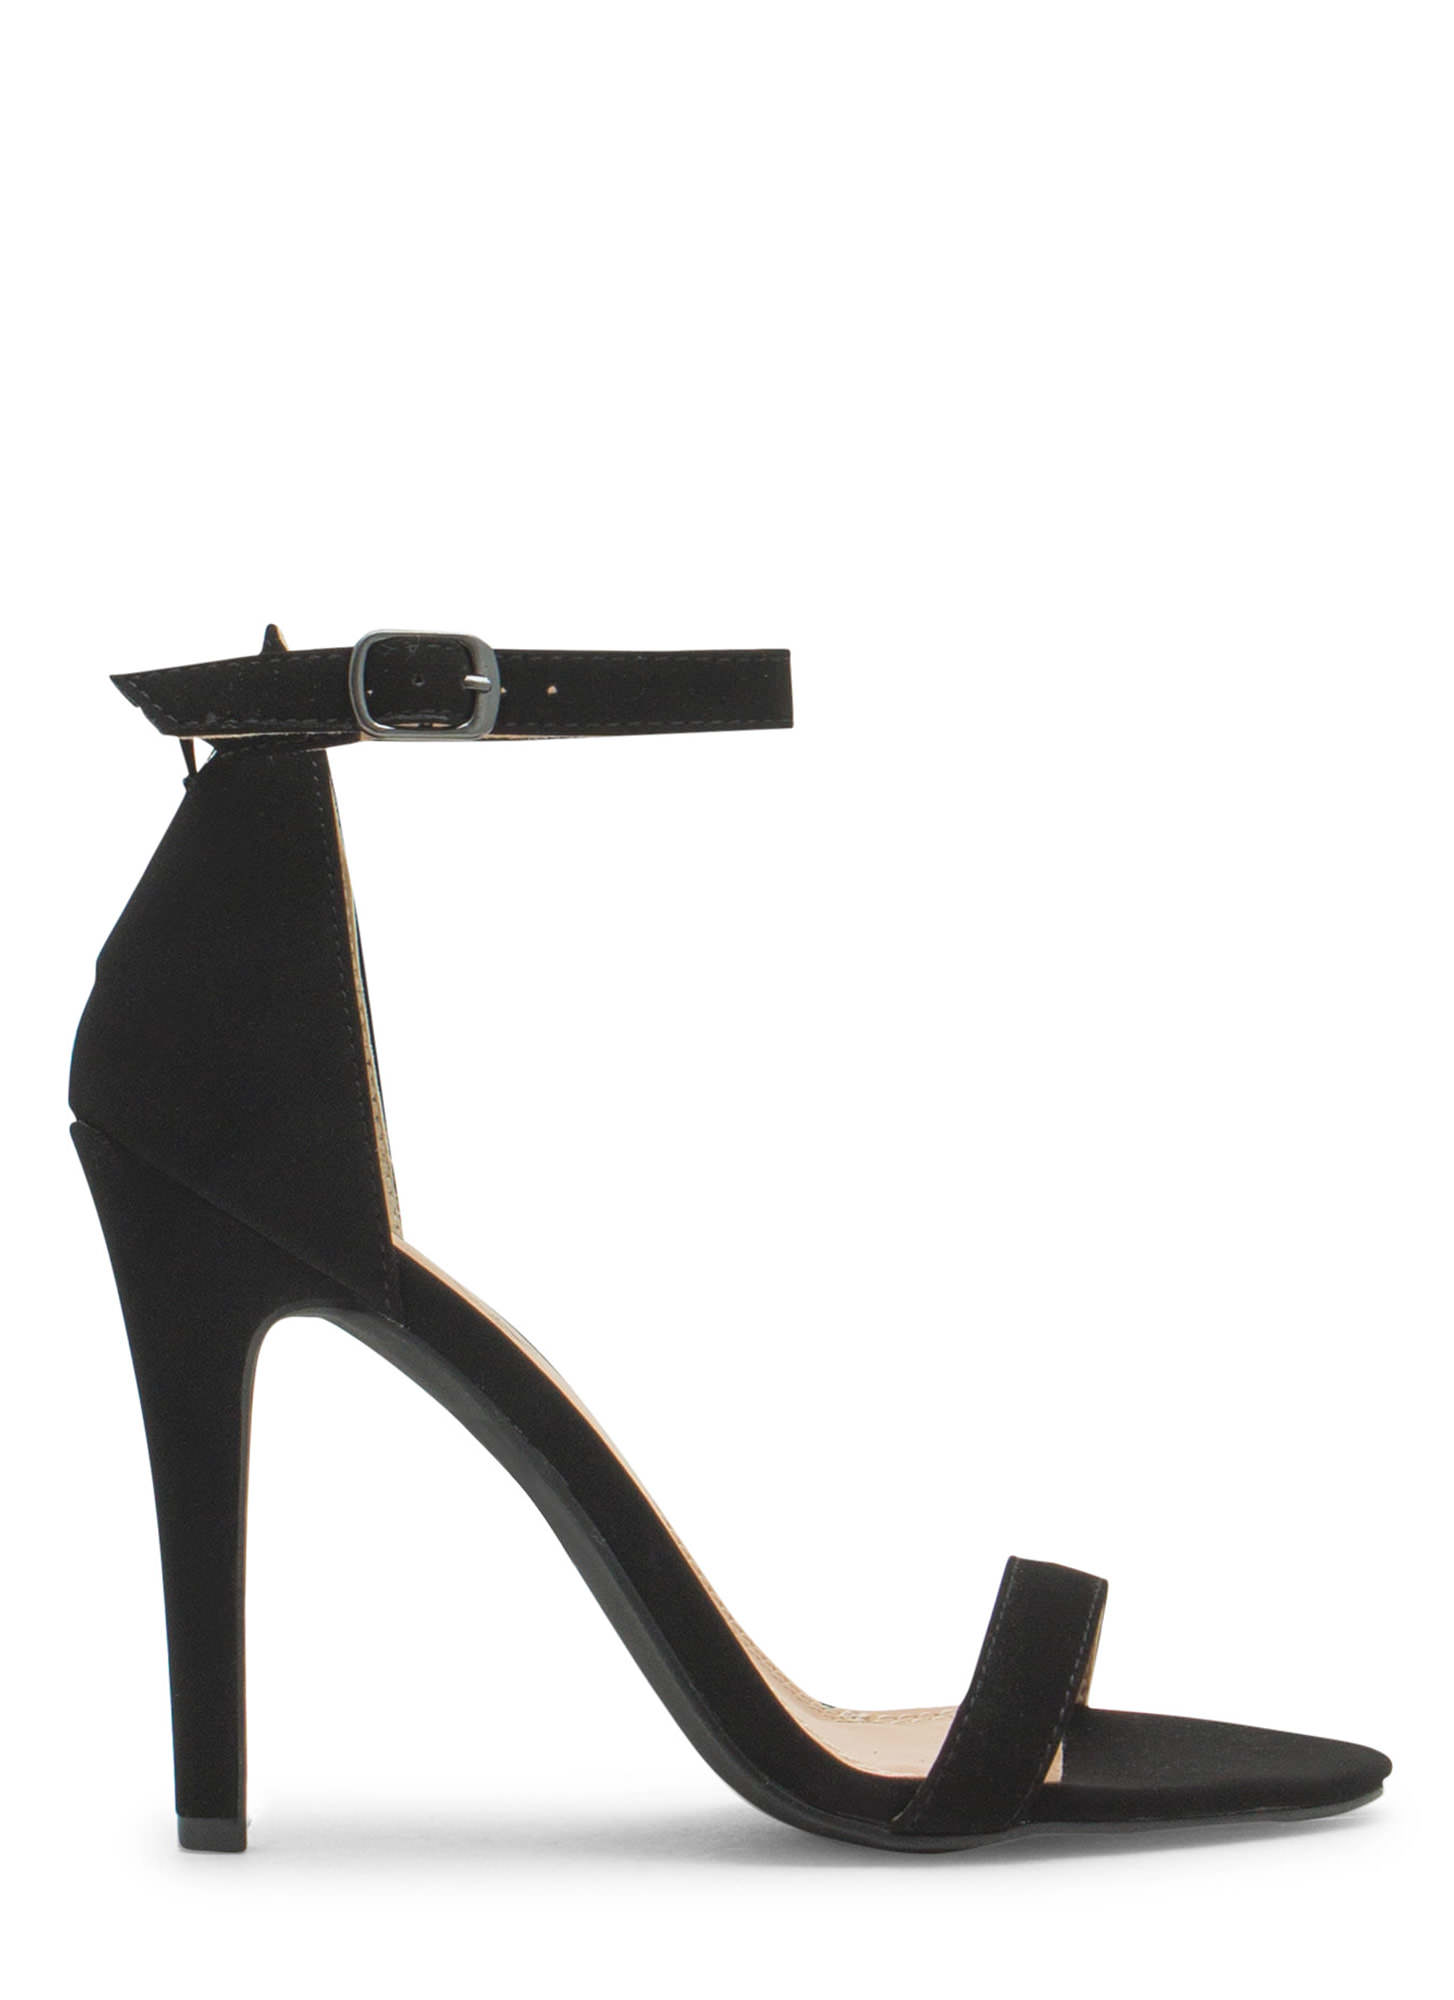 Less Is More Single-Strap Heels BLACK